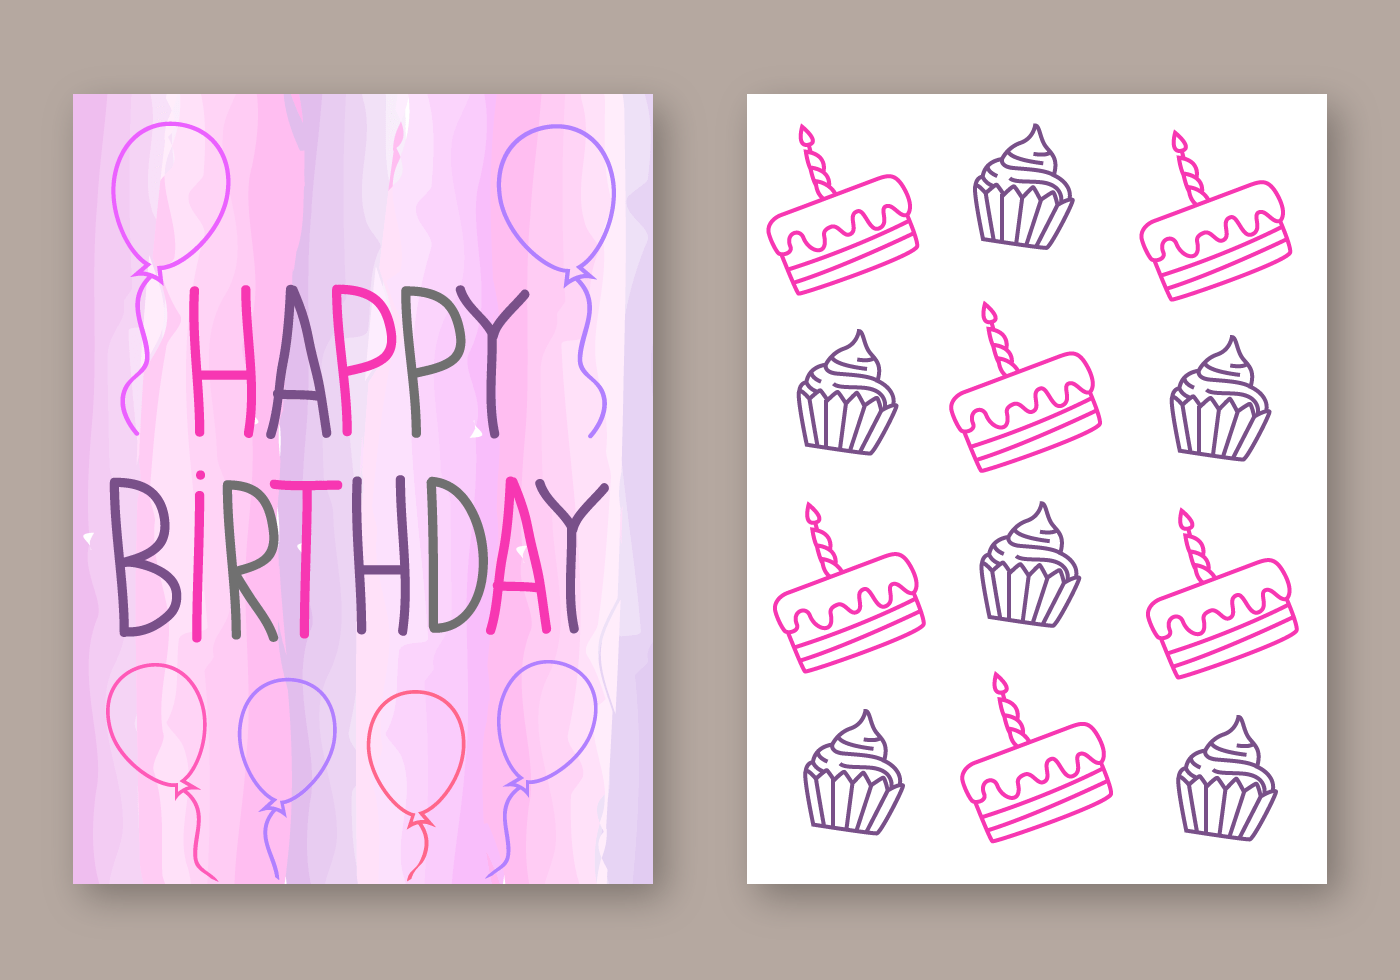 Geburtstagskarte Gestalten Free Happy Birthday Card Vector - Download Free Vectors